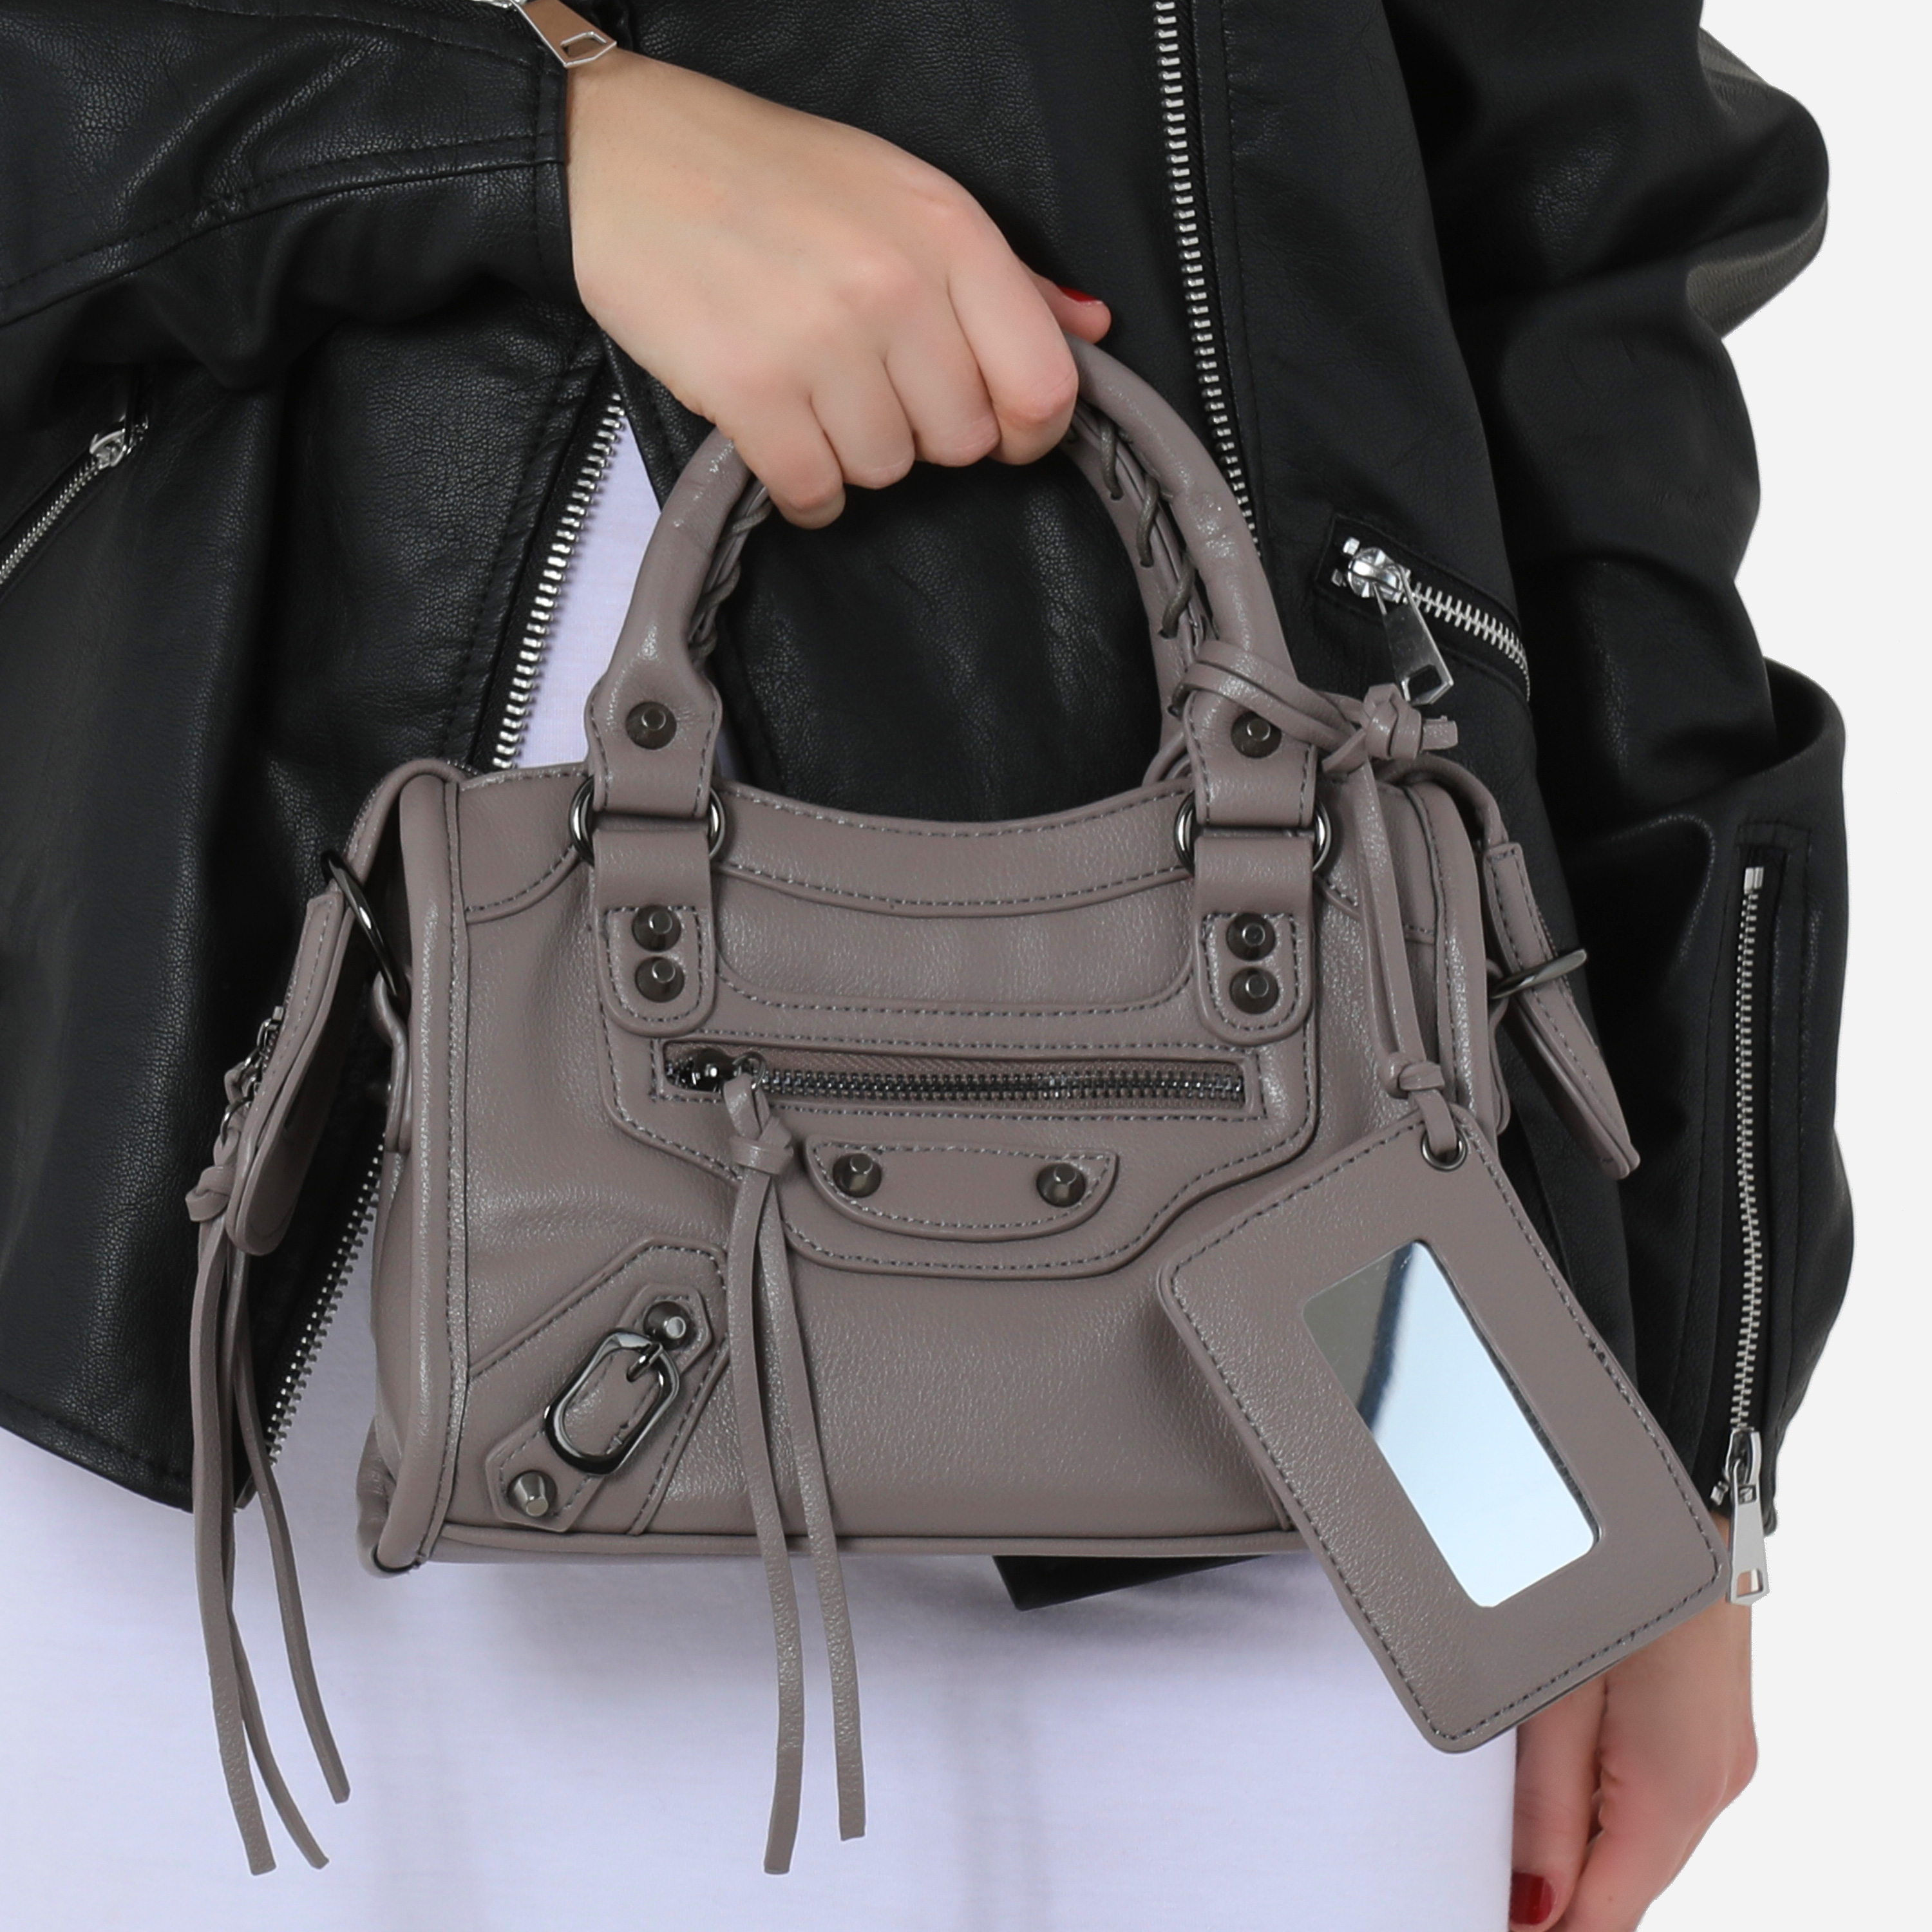 Buckle Detail Mini City Bag In Taupe Faux Leather